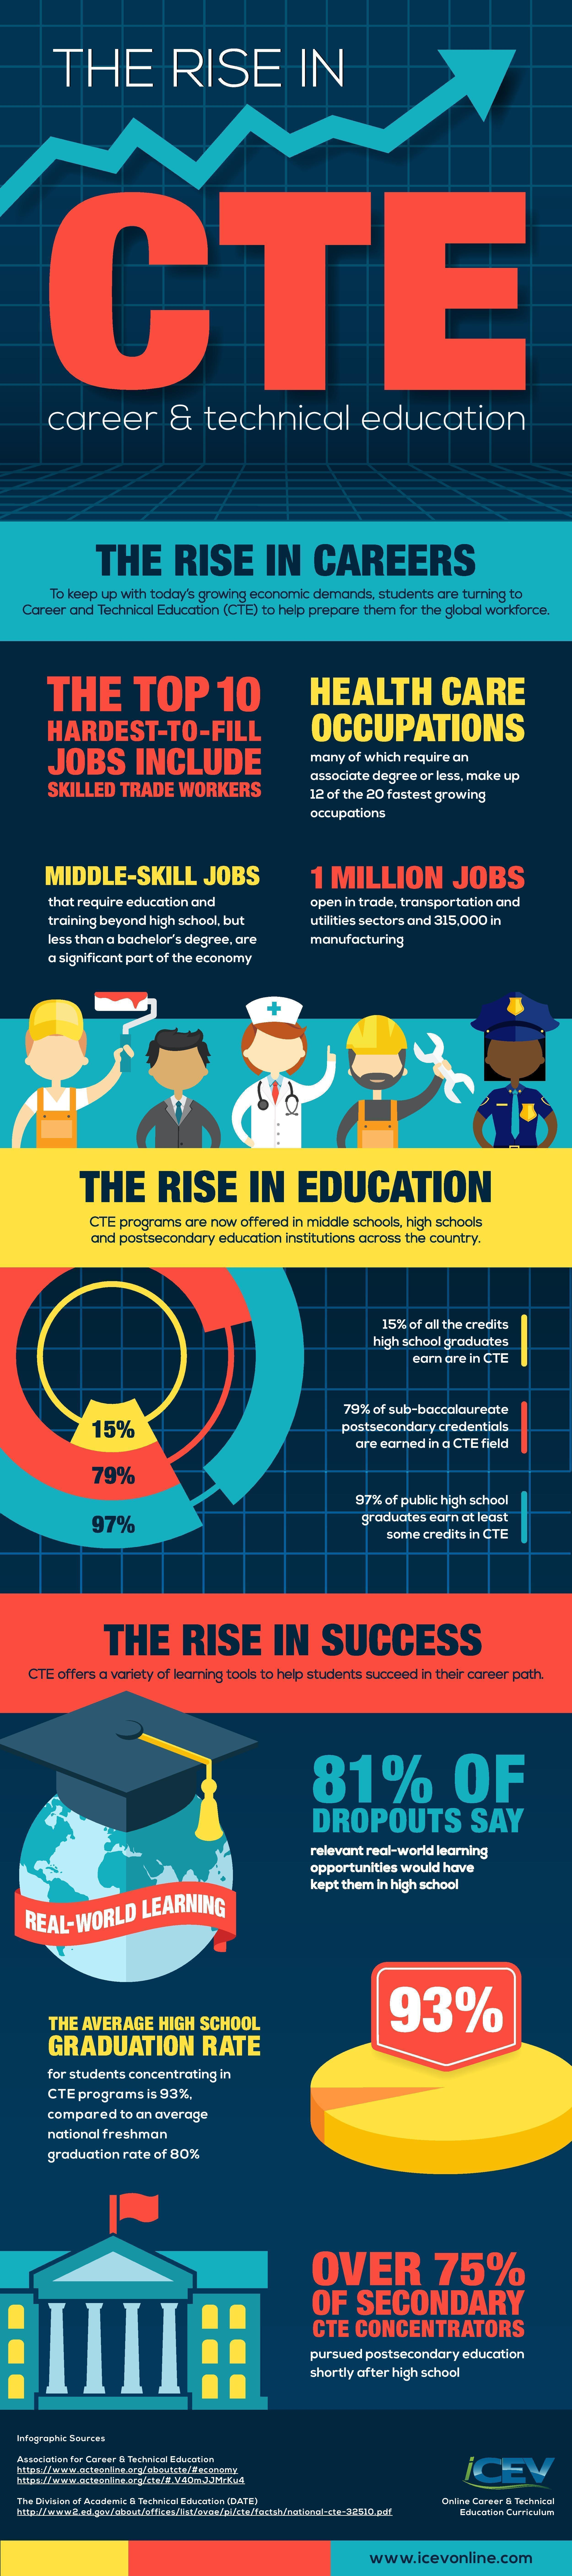 The Rise in CTE Infographic